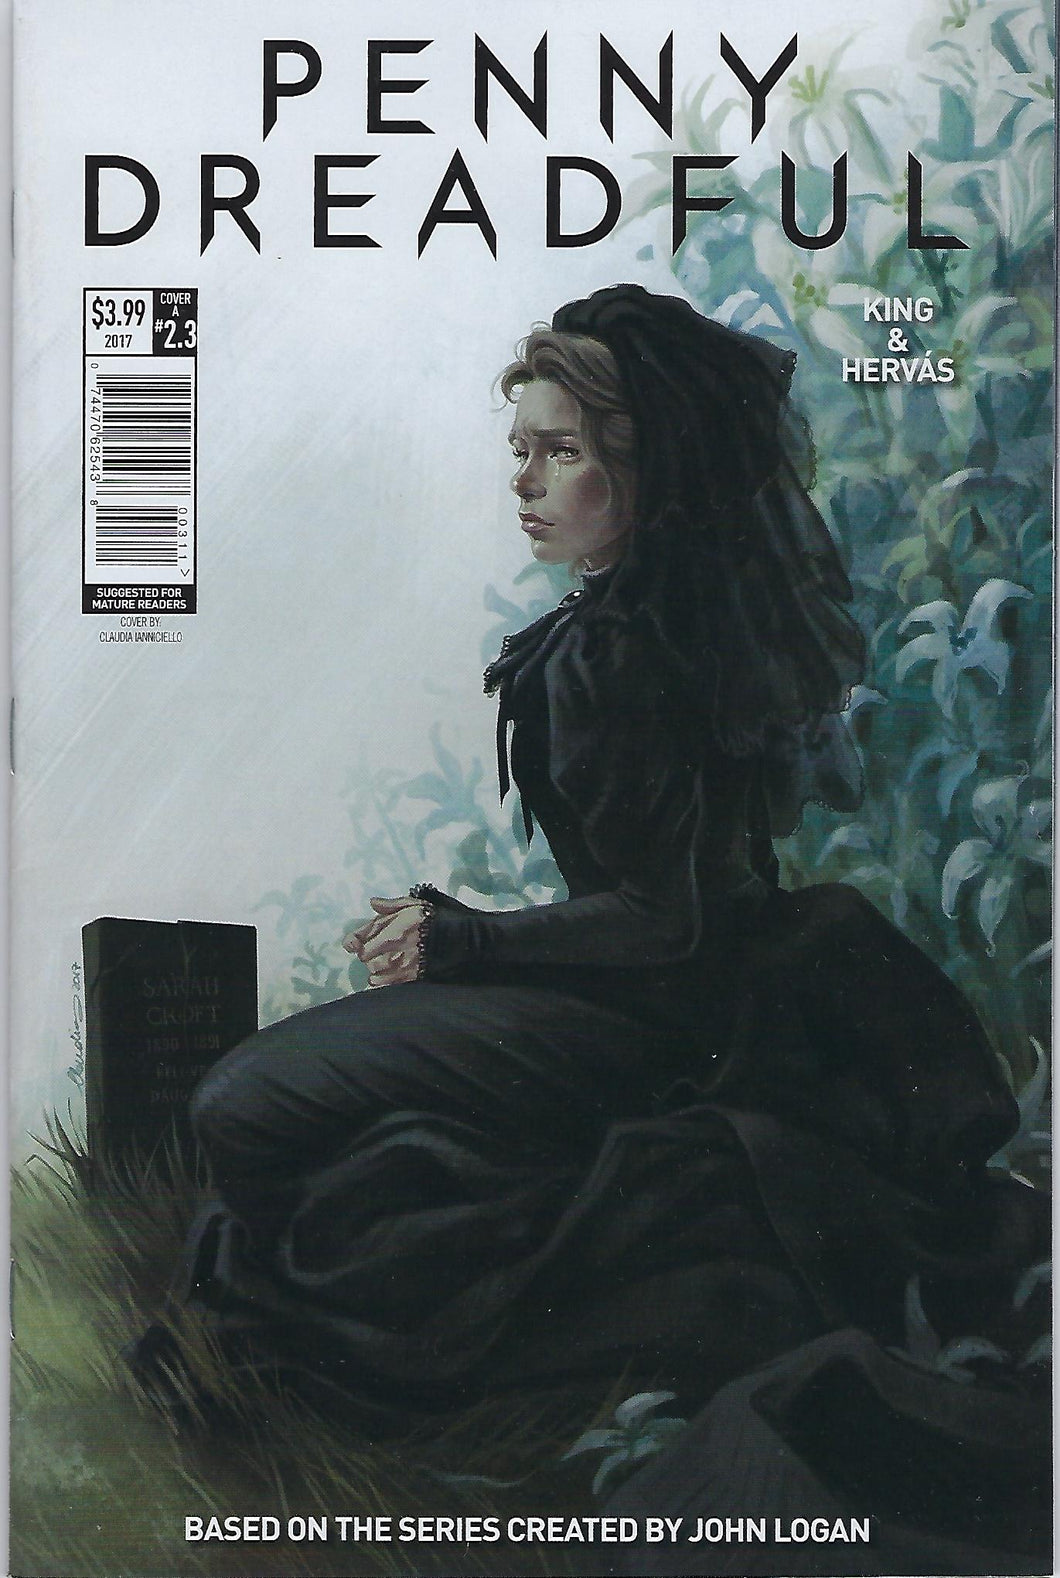 Penny Dreadful # 2.3 Cover